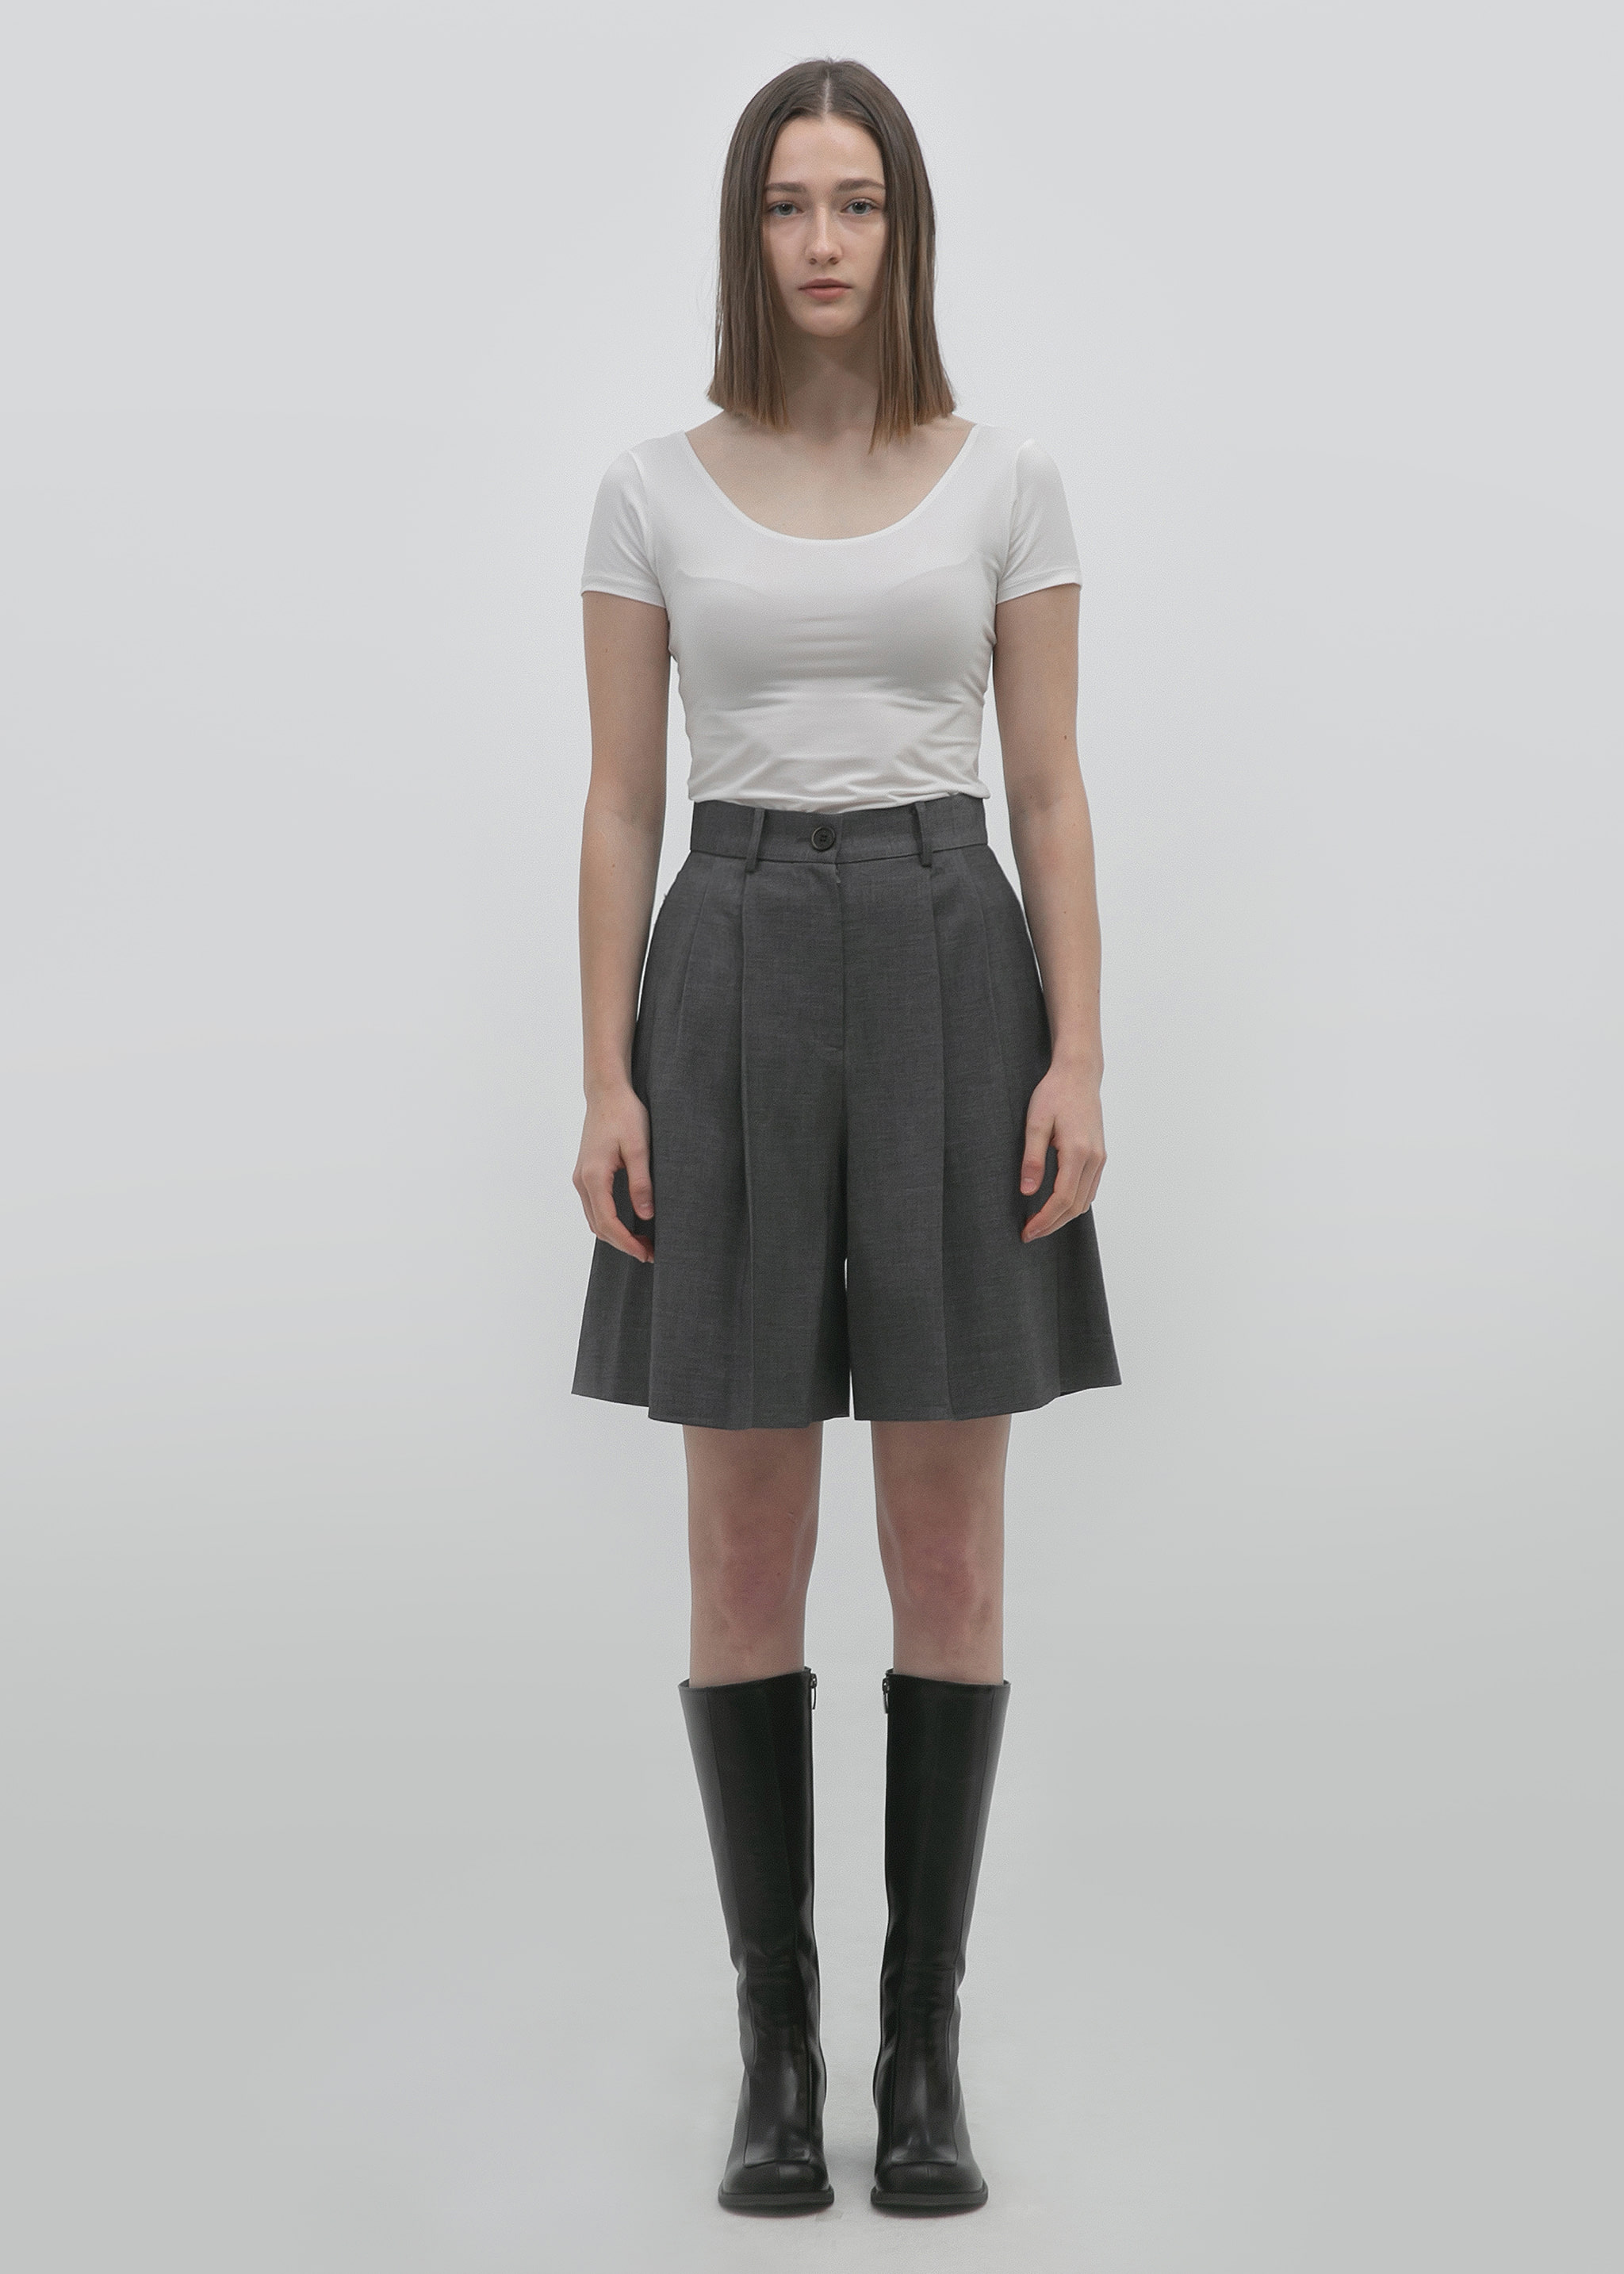 PLEATED BERMUDA SHORTS (ULTIMATE GRAY)